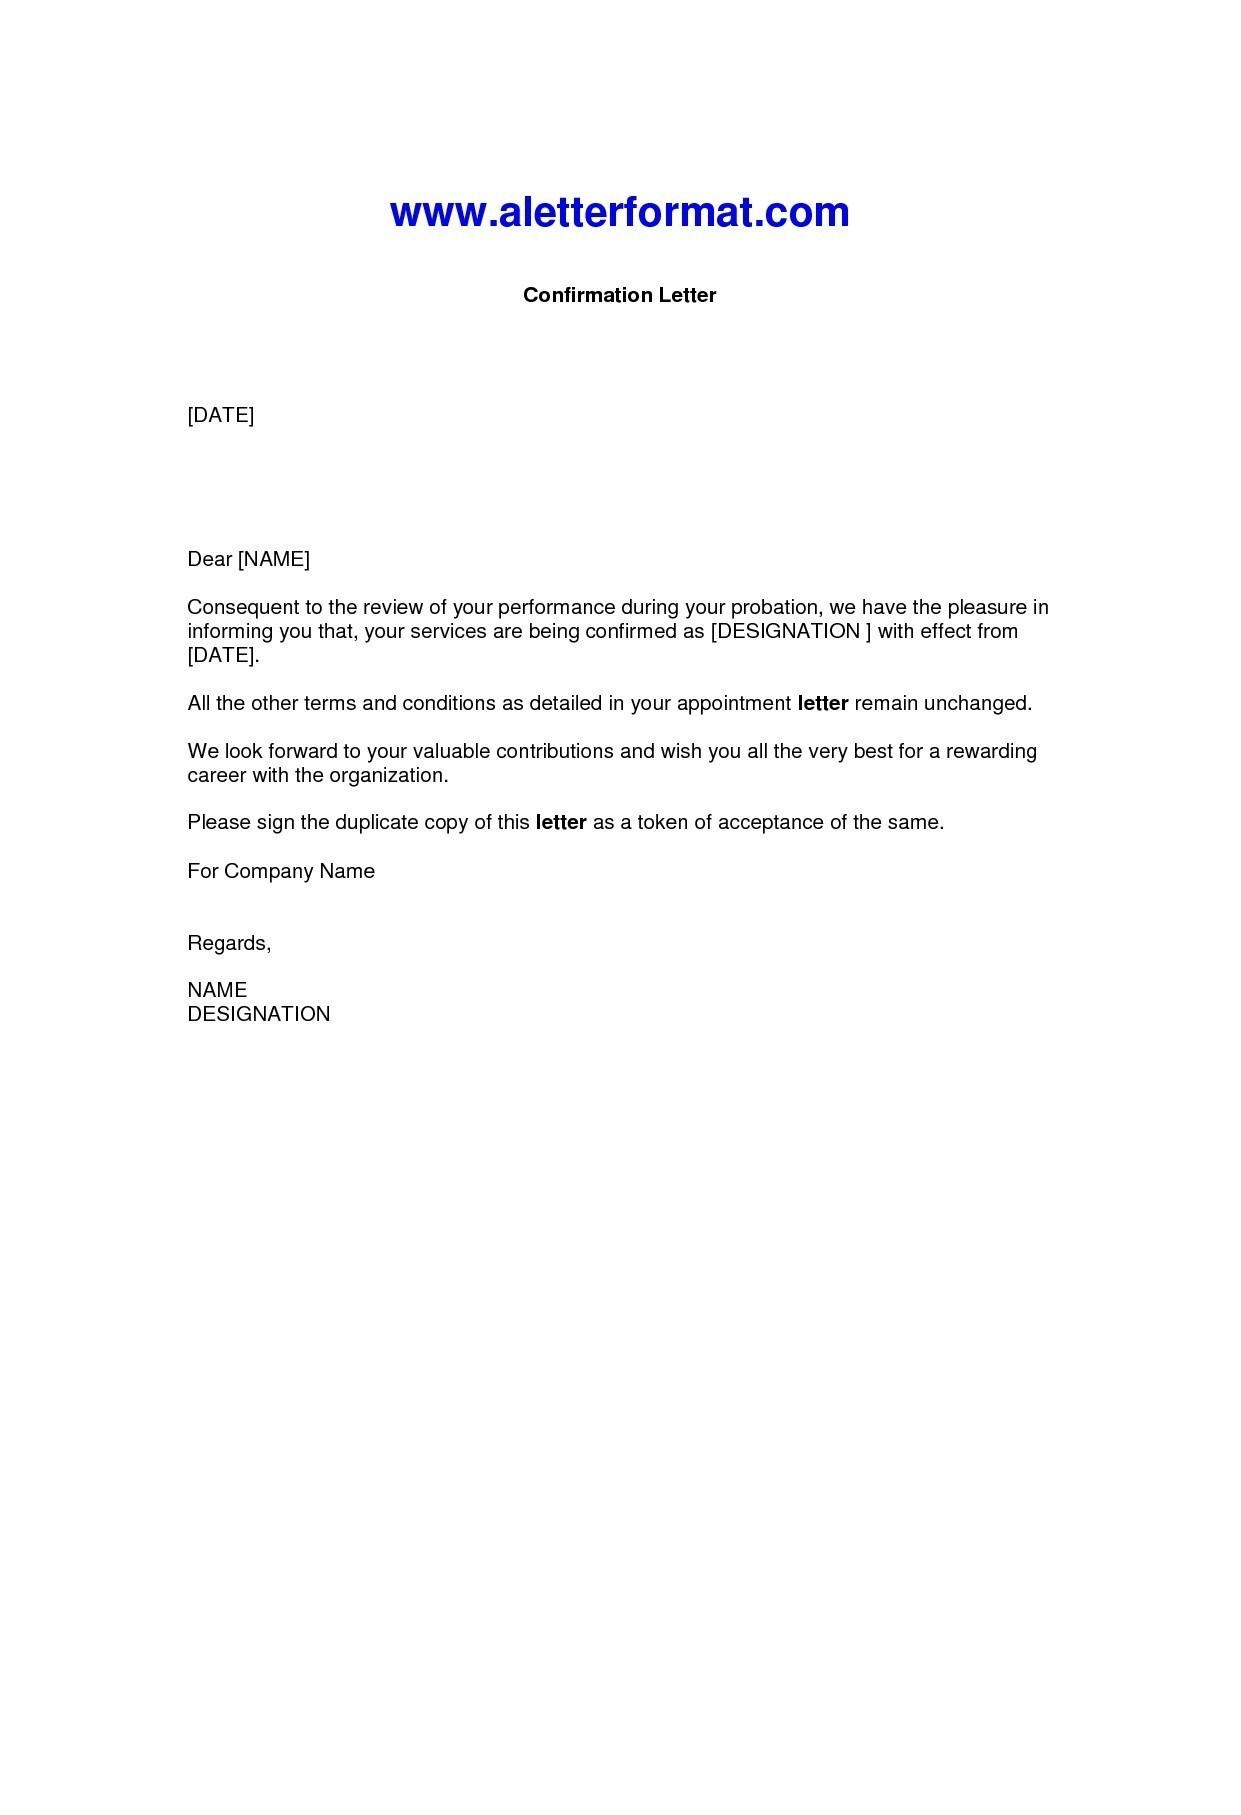 Confirmation Of Employment Letter Template - Valid Request for A Job Confirmation Letter Sample